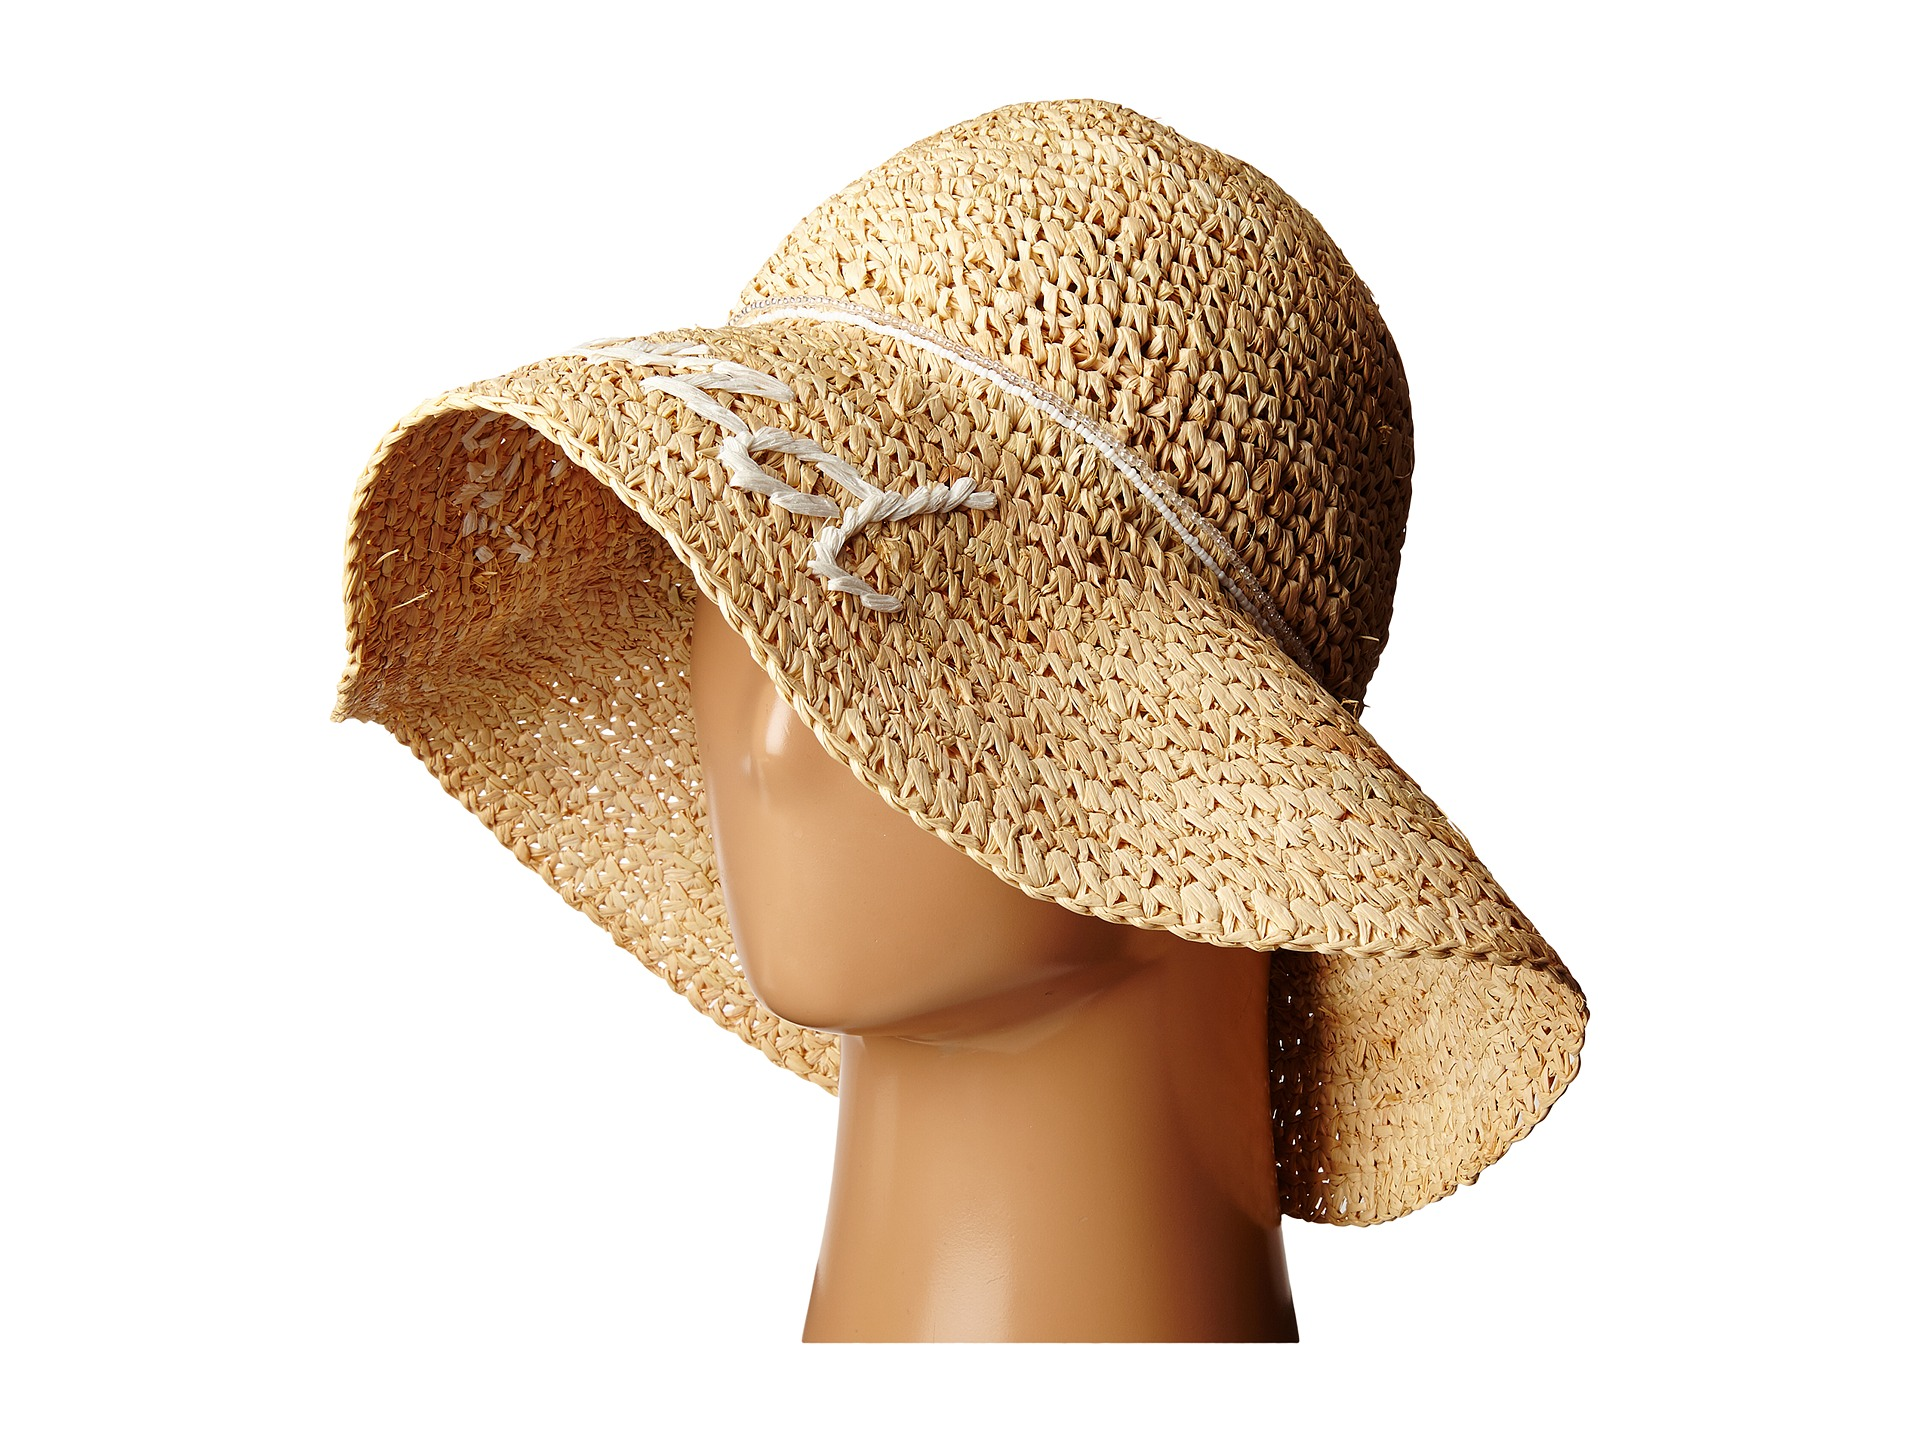 how to fix a ripped straw hat